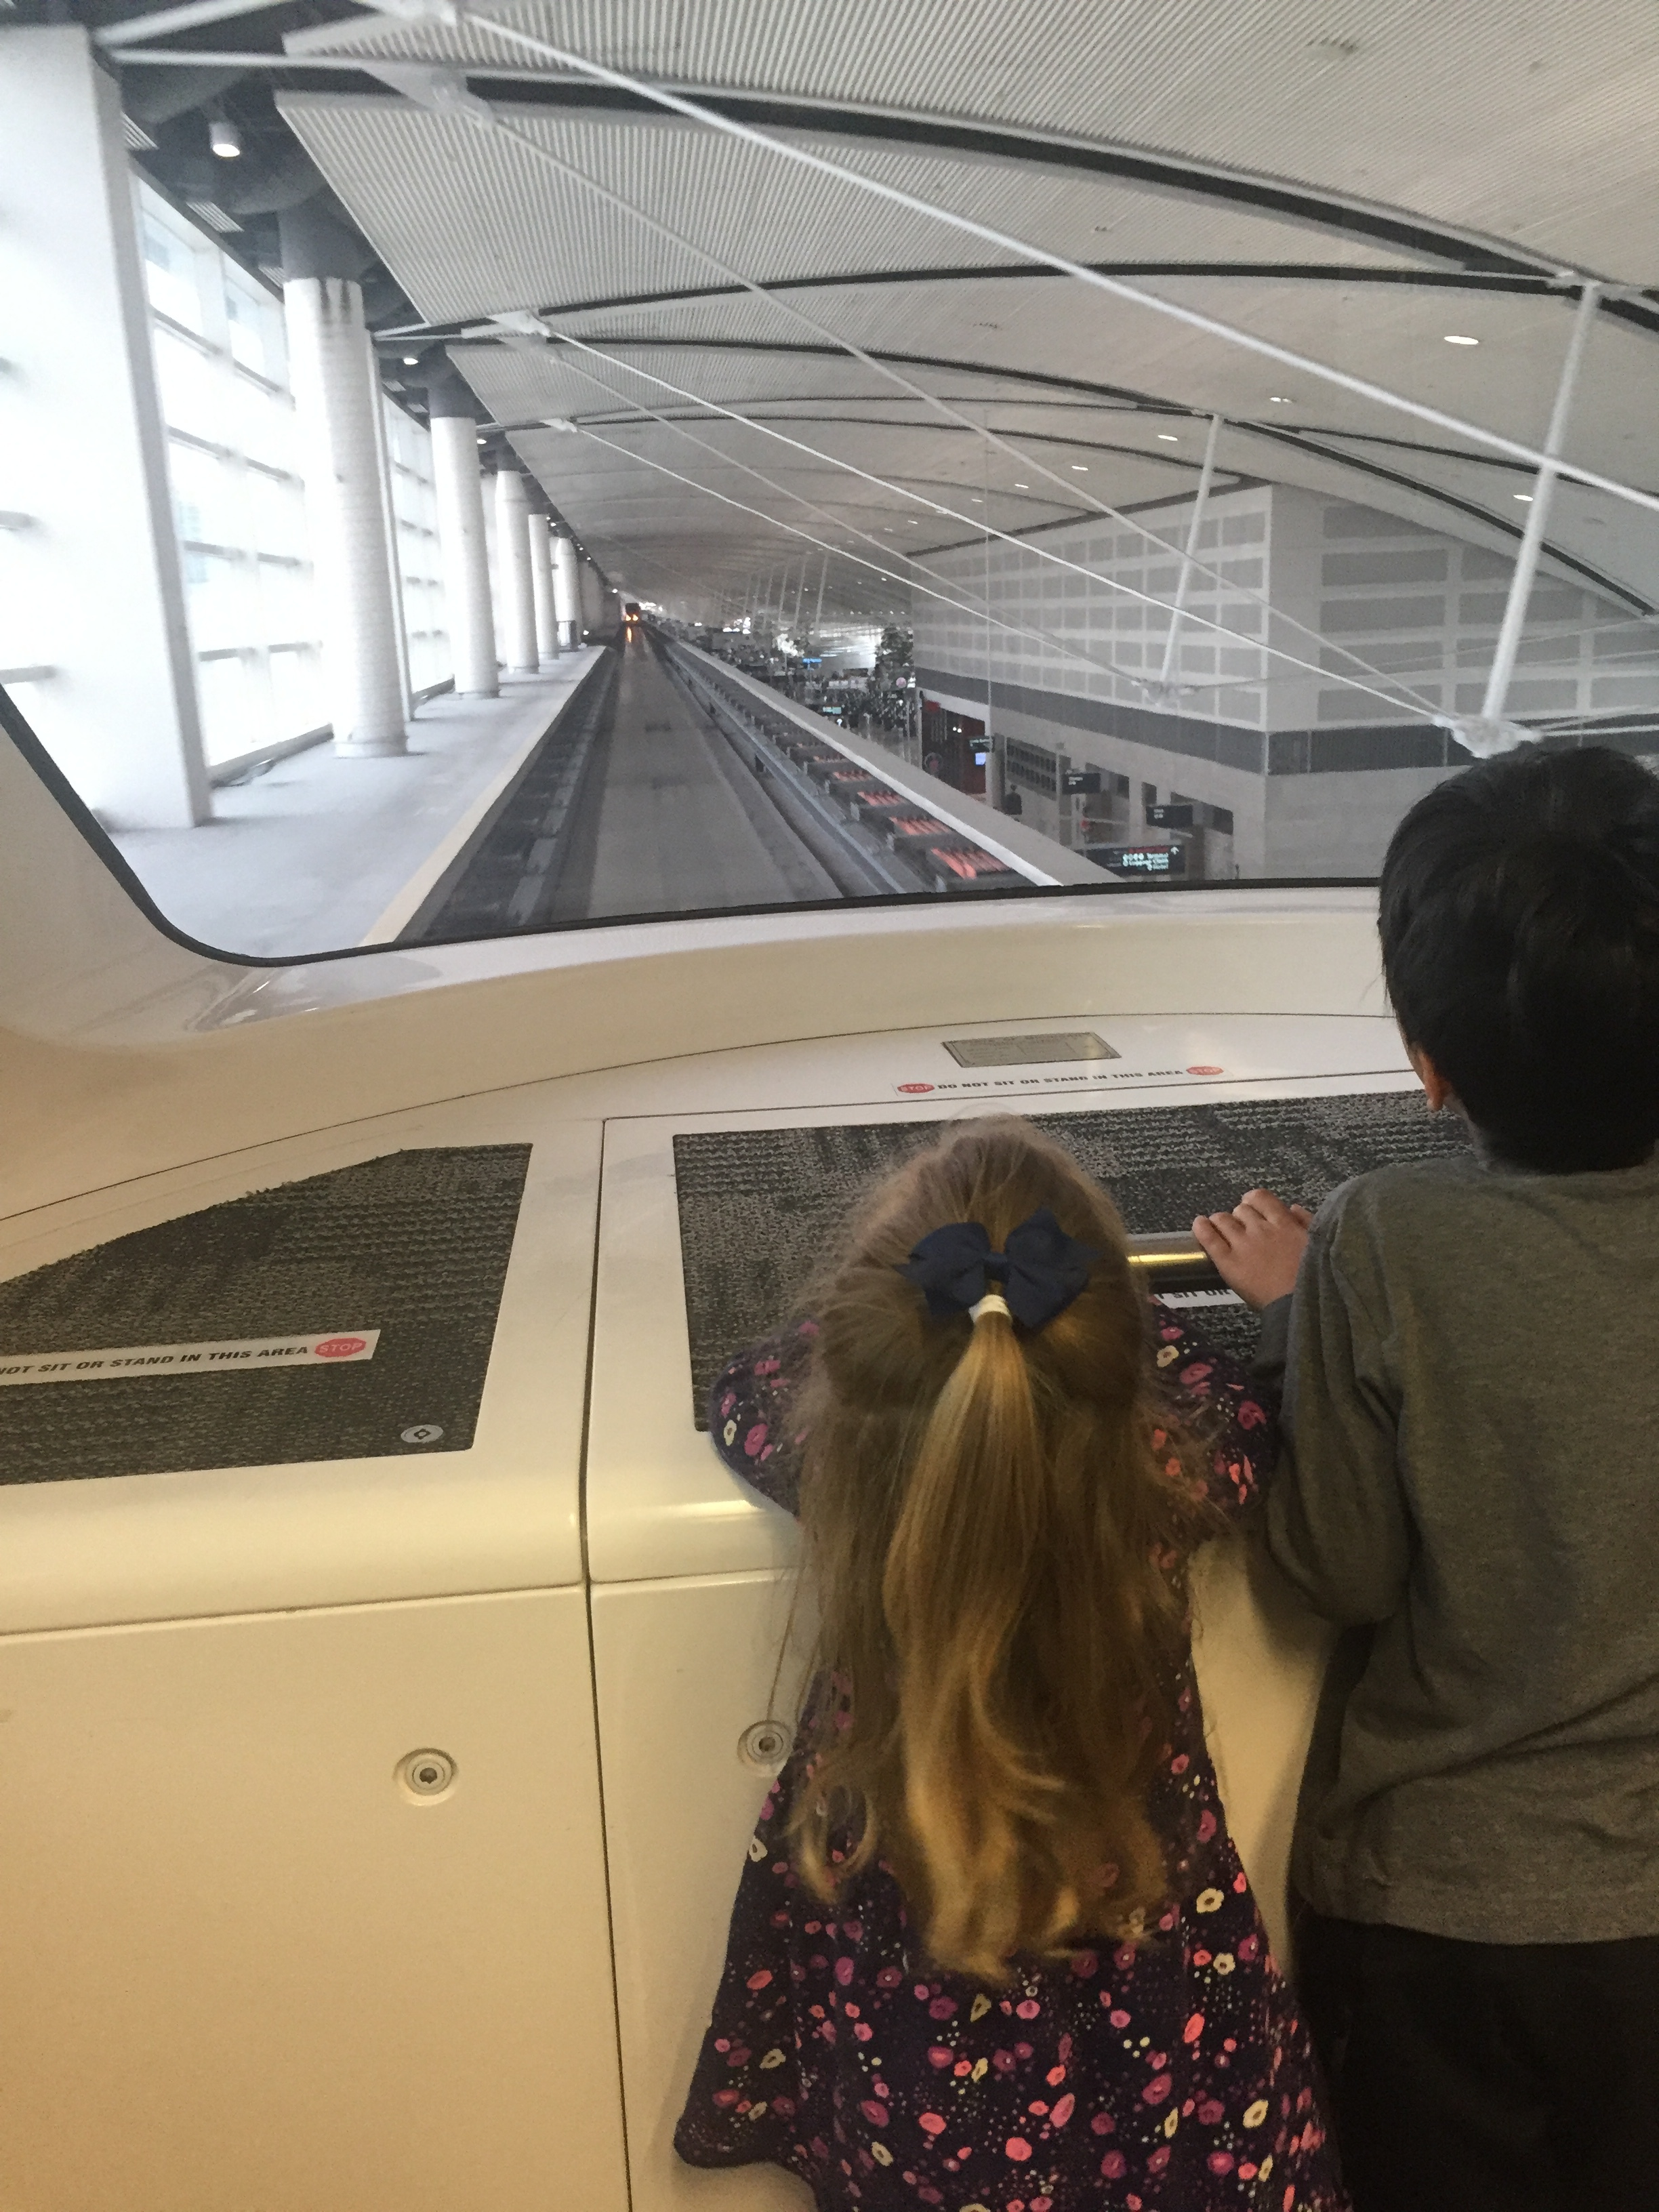 We had the BEST detour through the Detroit airport on our way to see the Paynes in Nashville. Lucie loved the red shuttle train.